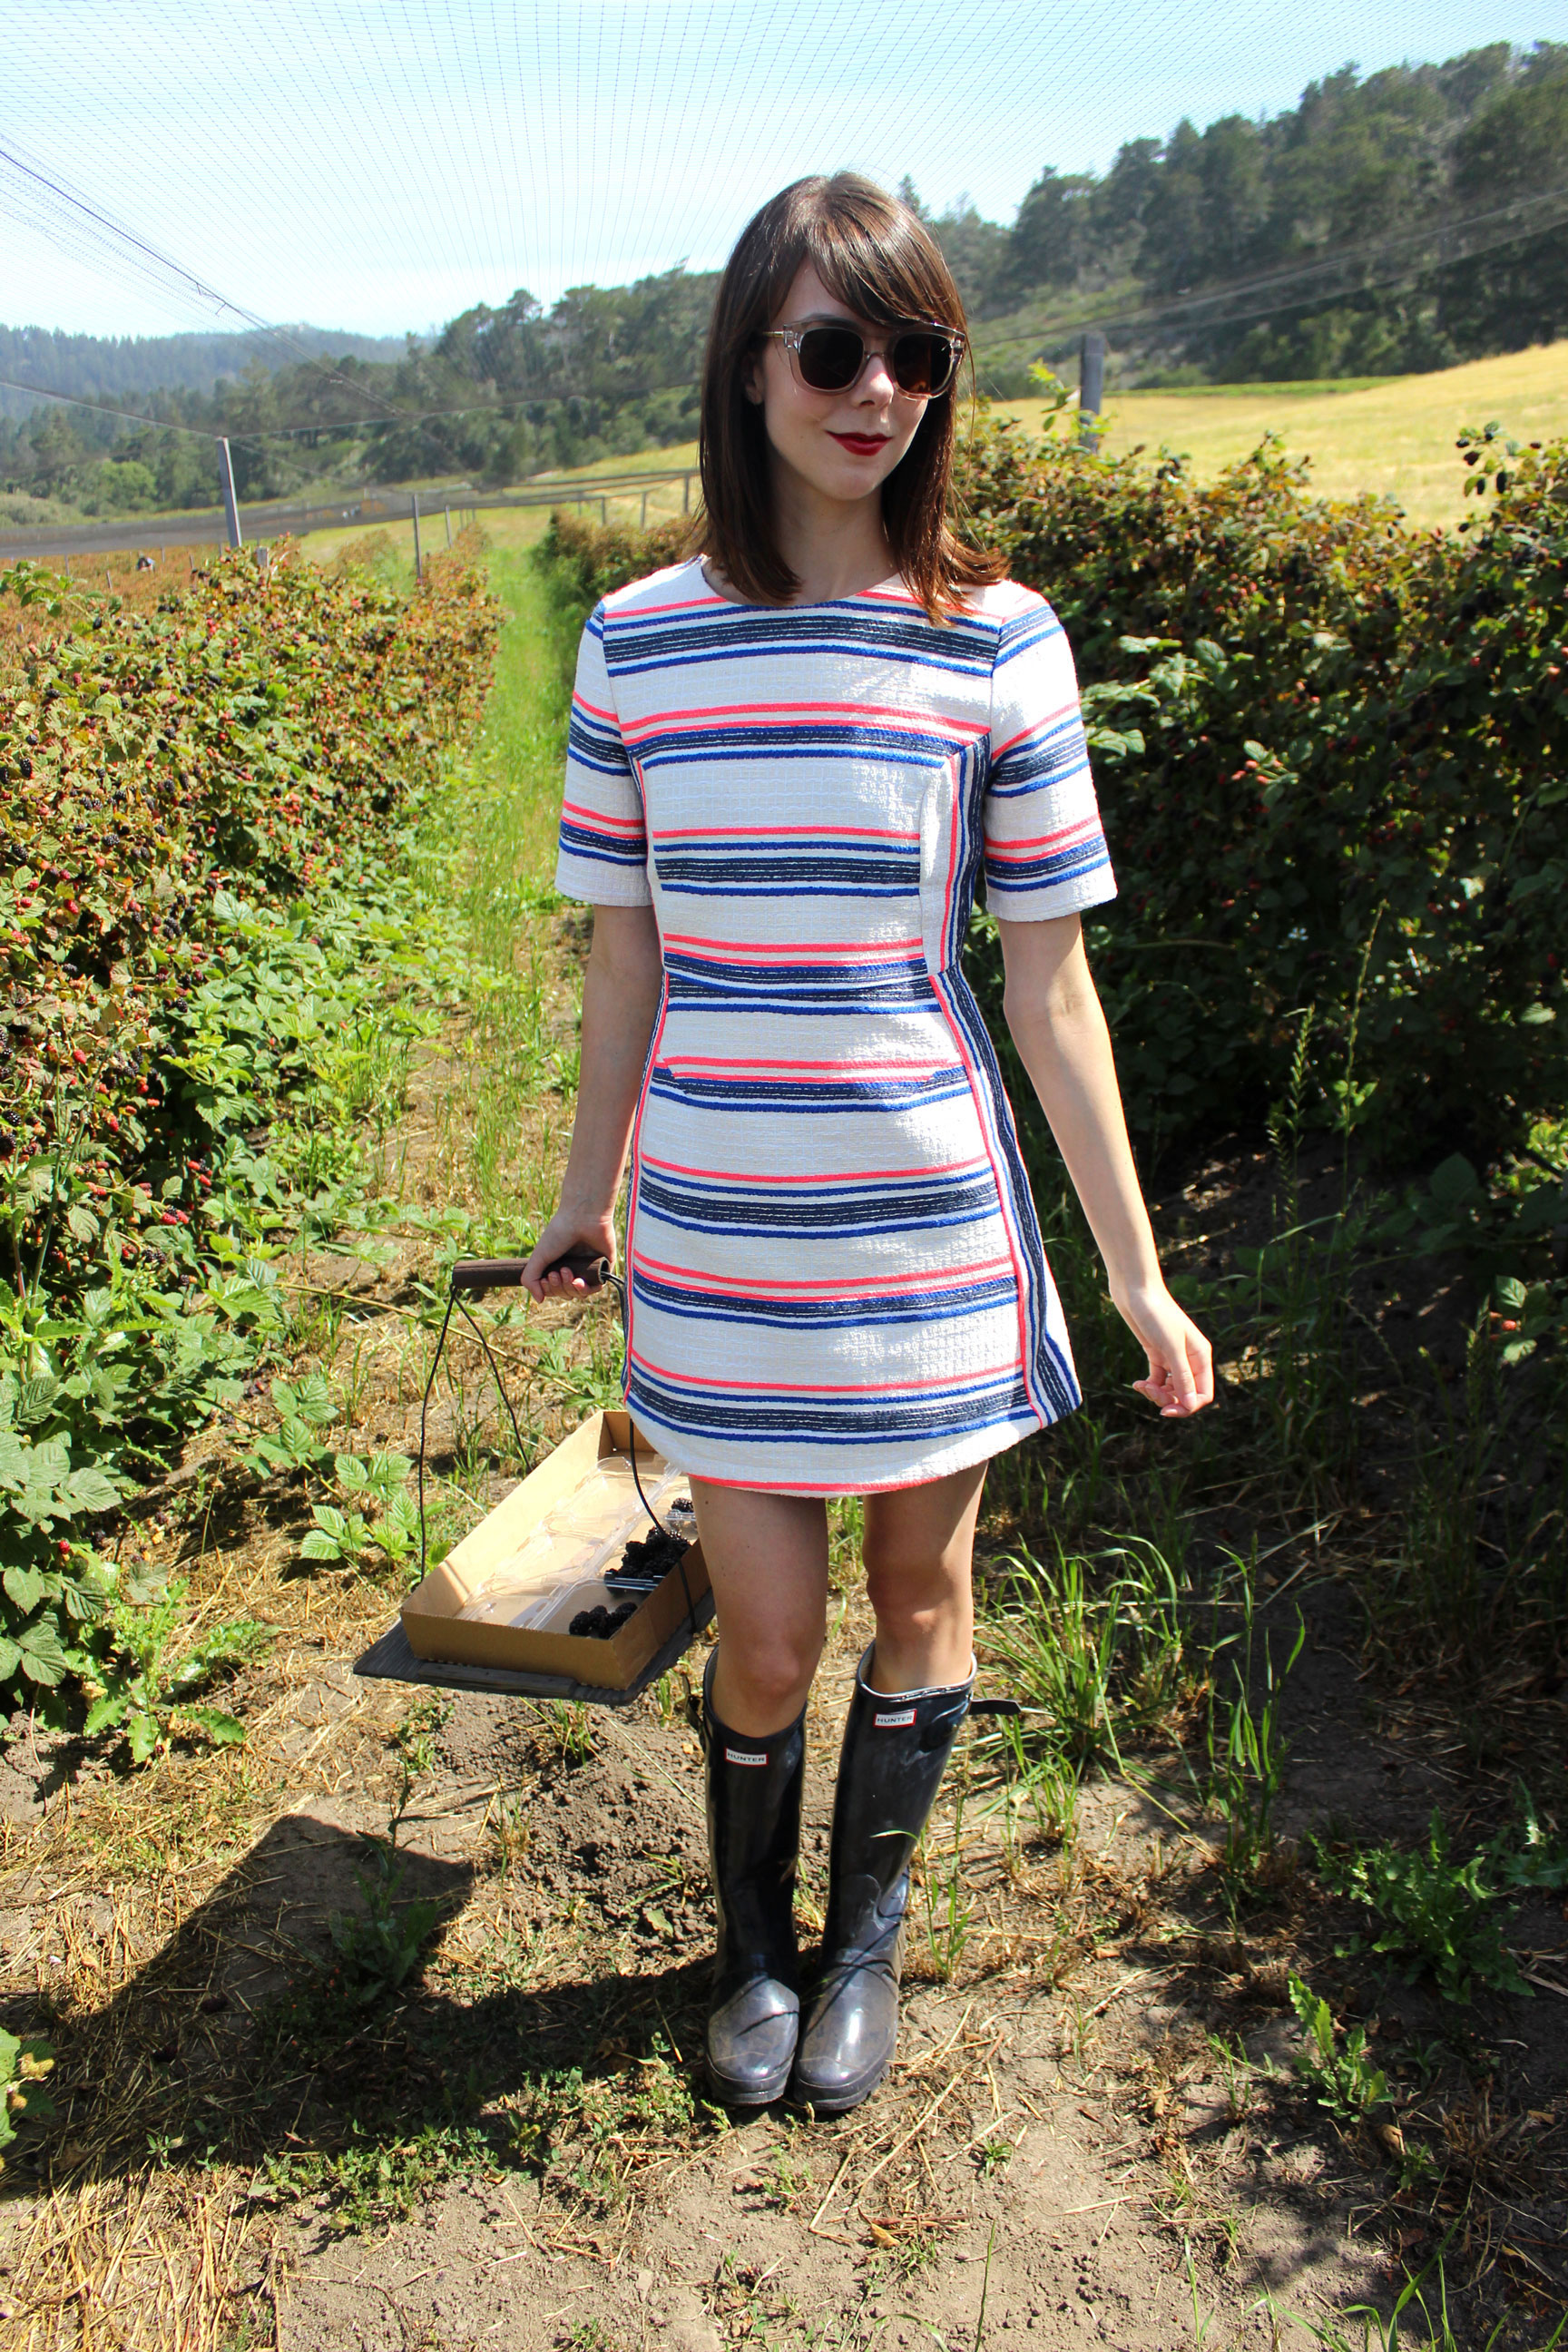 Summertime in Northern California - picking berries and wearing this red, white and blue striped shift dress from Topshop | Sundays and Somedays